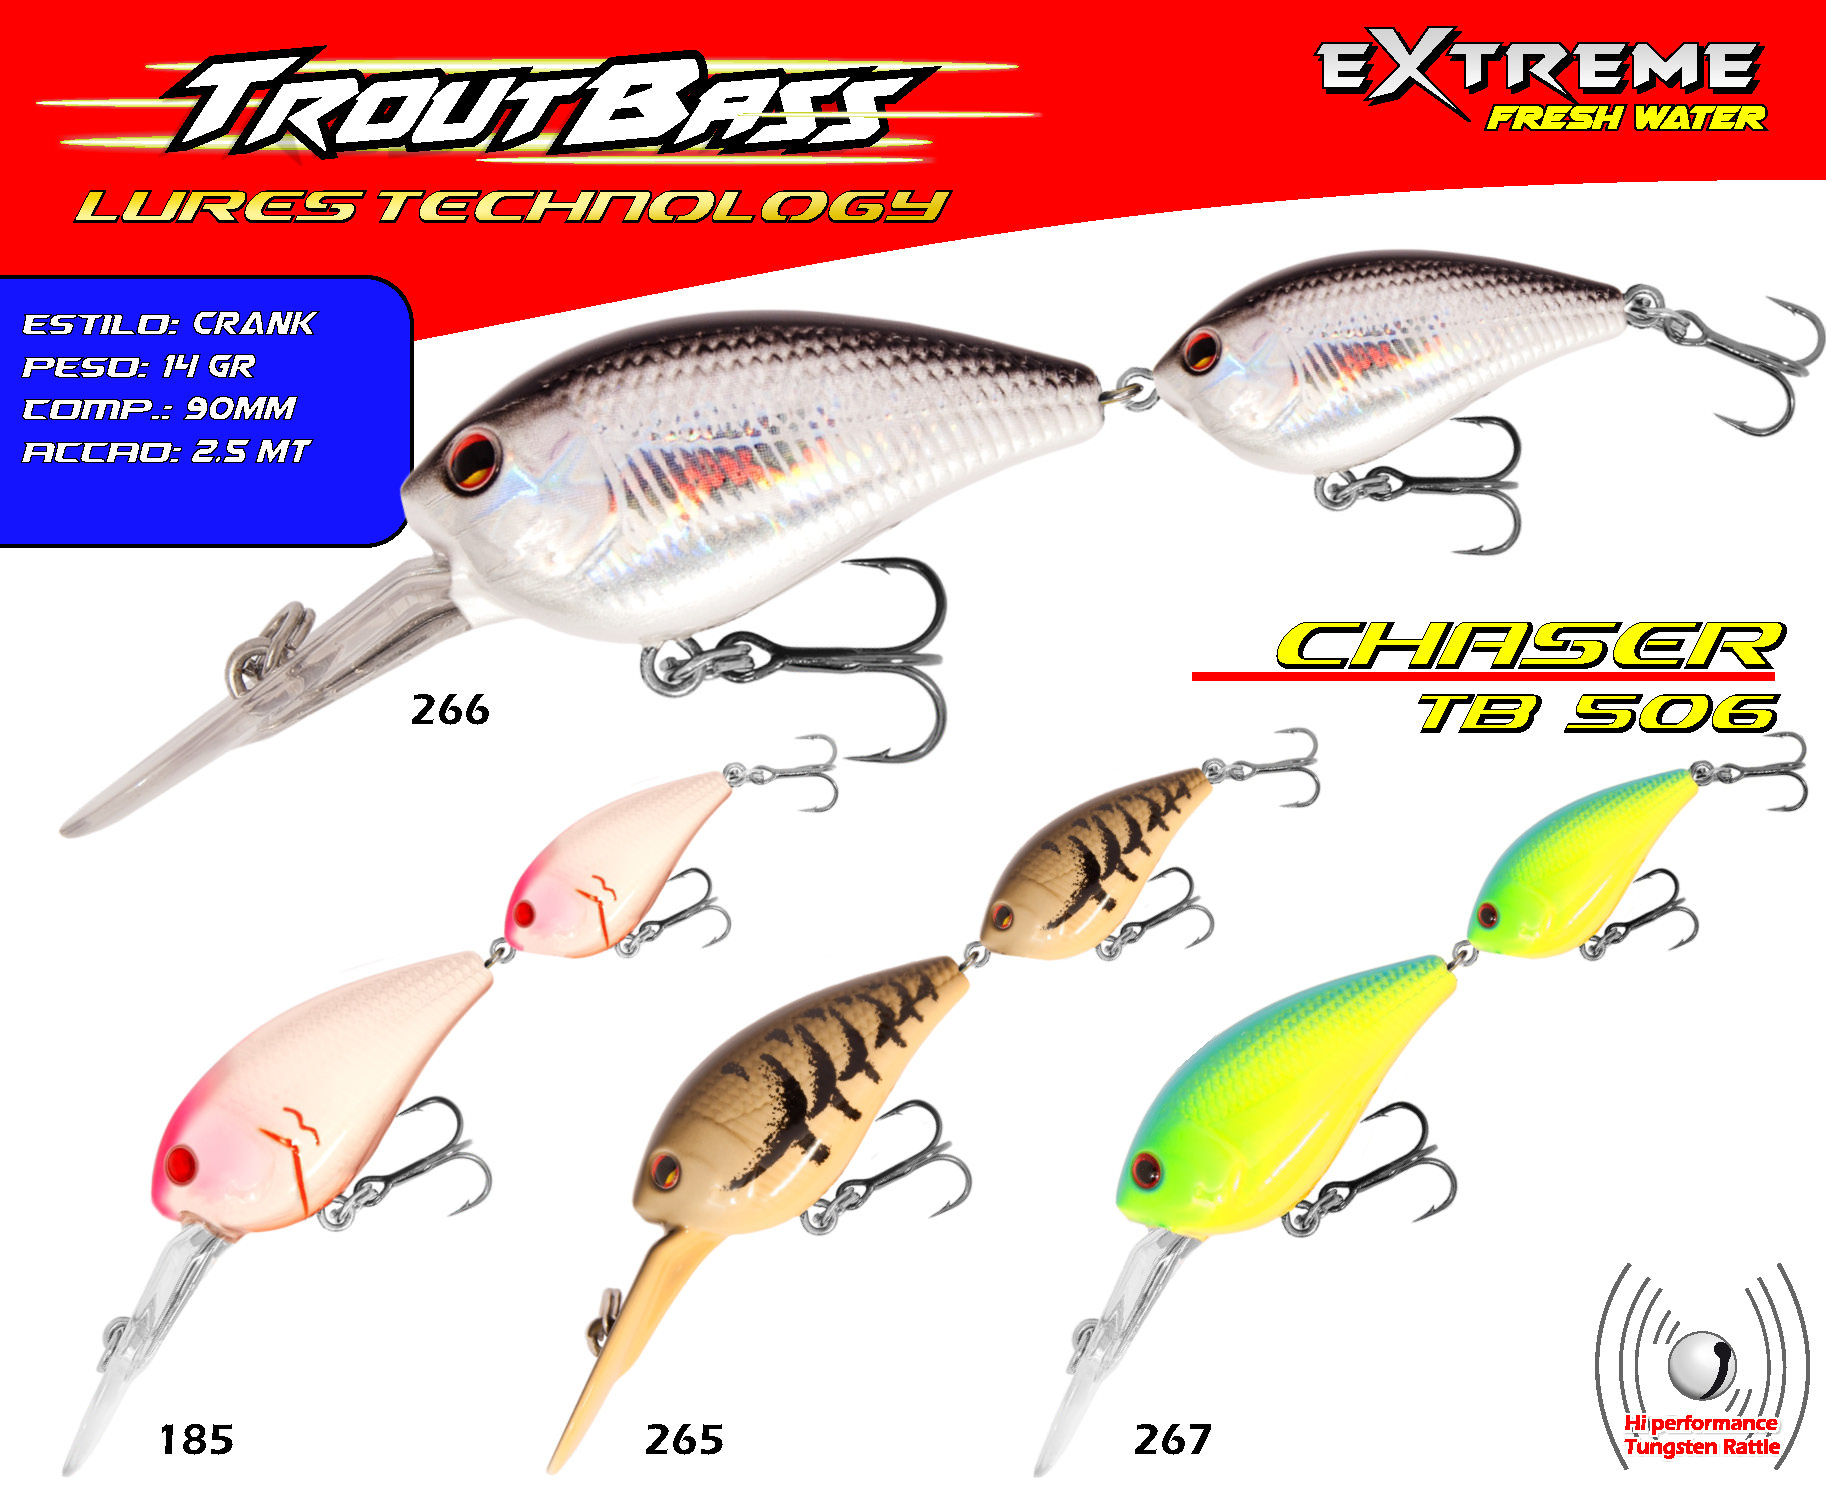 Troutbass Chaser TB 506